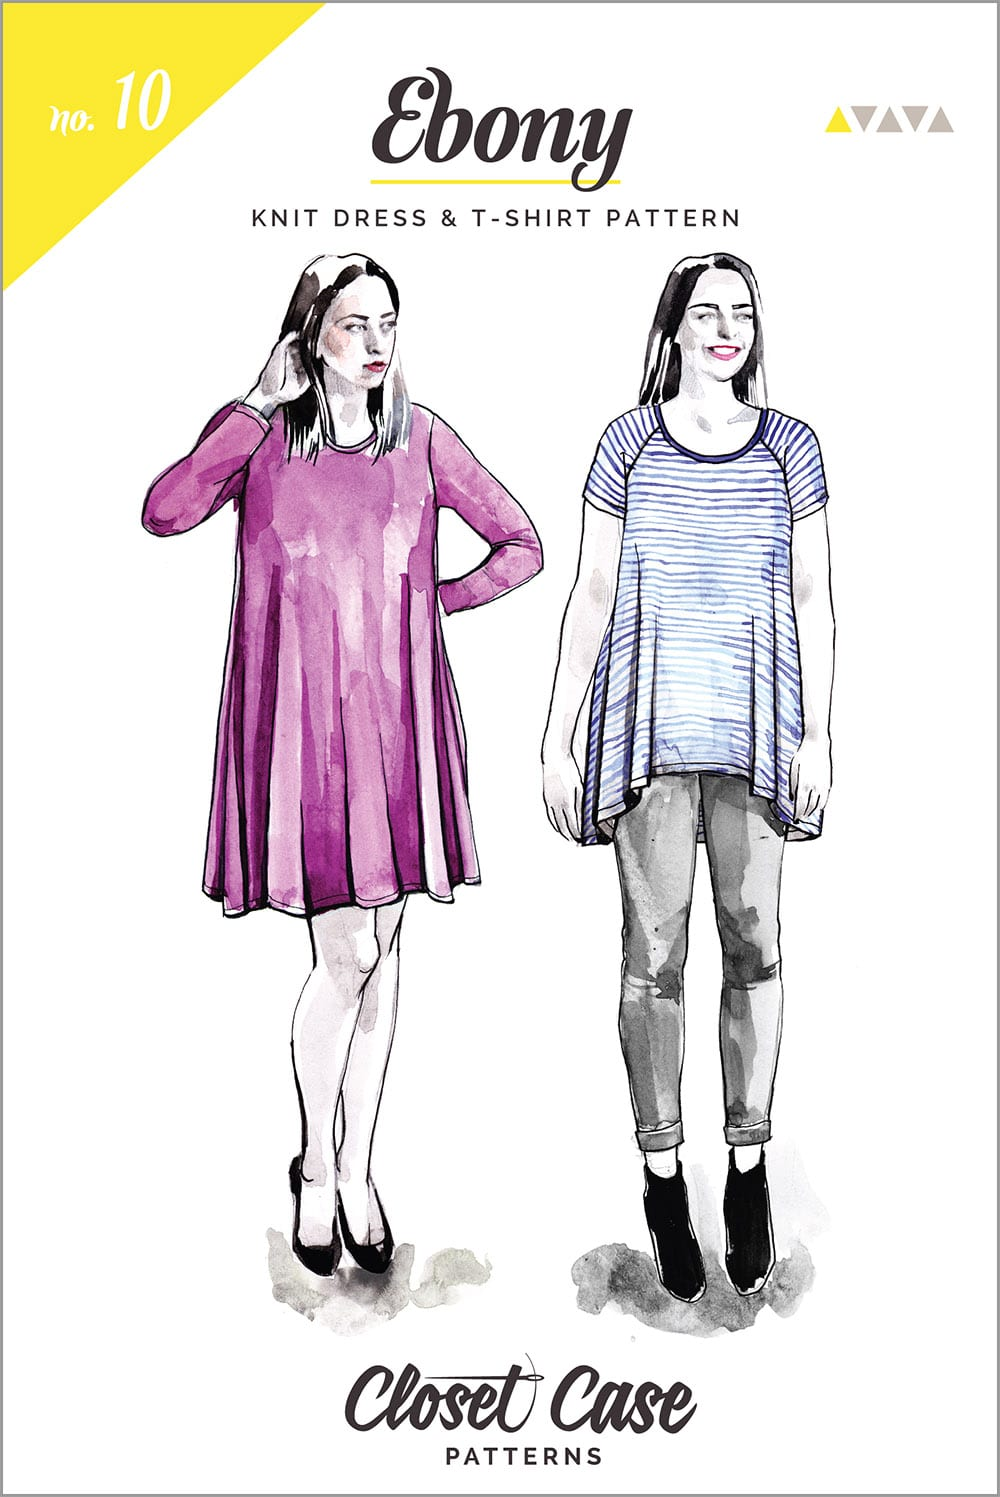 The Ebony Tee // T-shirt & knit dress pattern // Closet Case Patterns